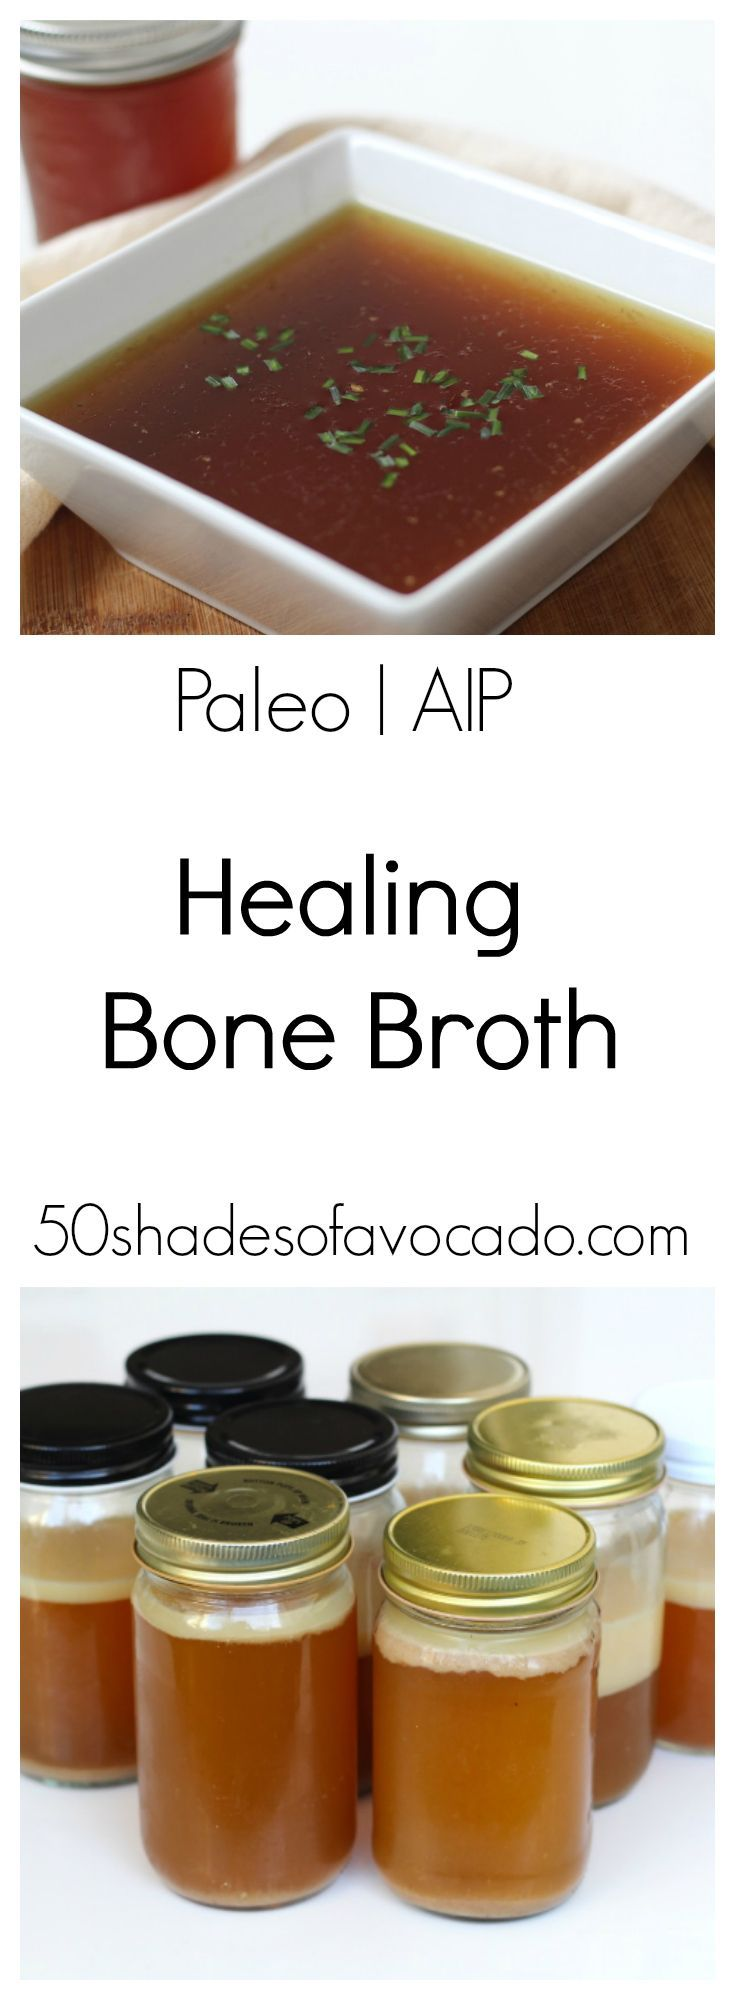 This simple healing chicken bone broth recipe is packed with gut healing nutrients and is a great base for soups and sauces.